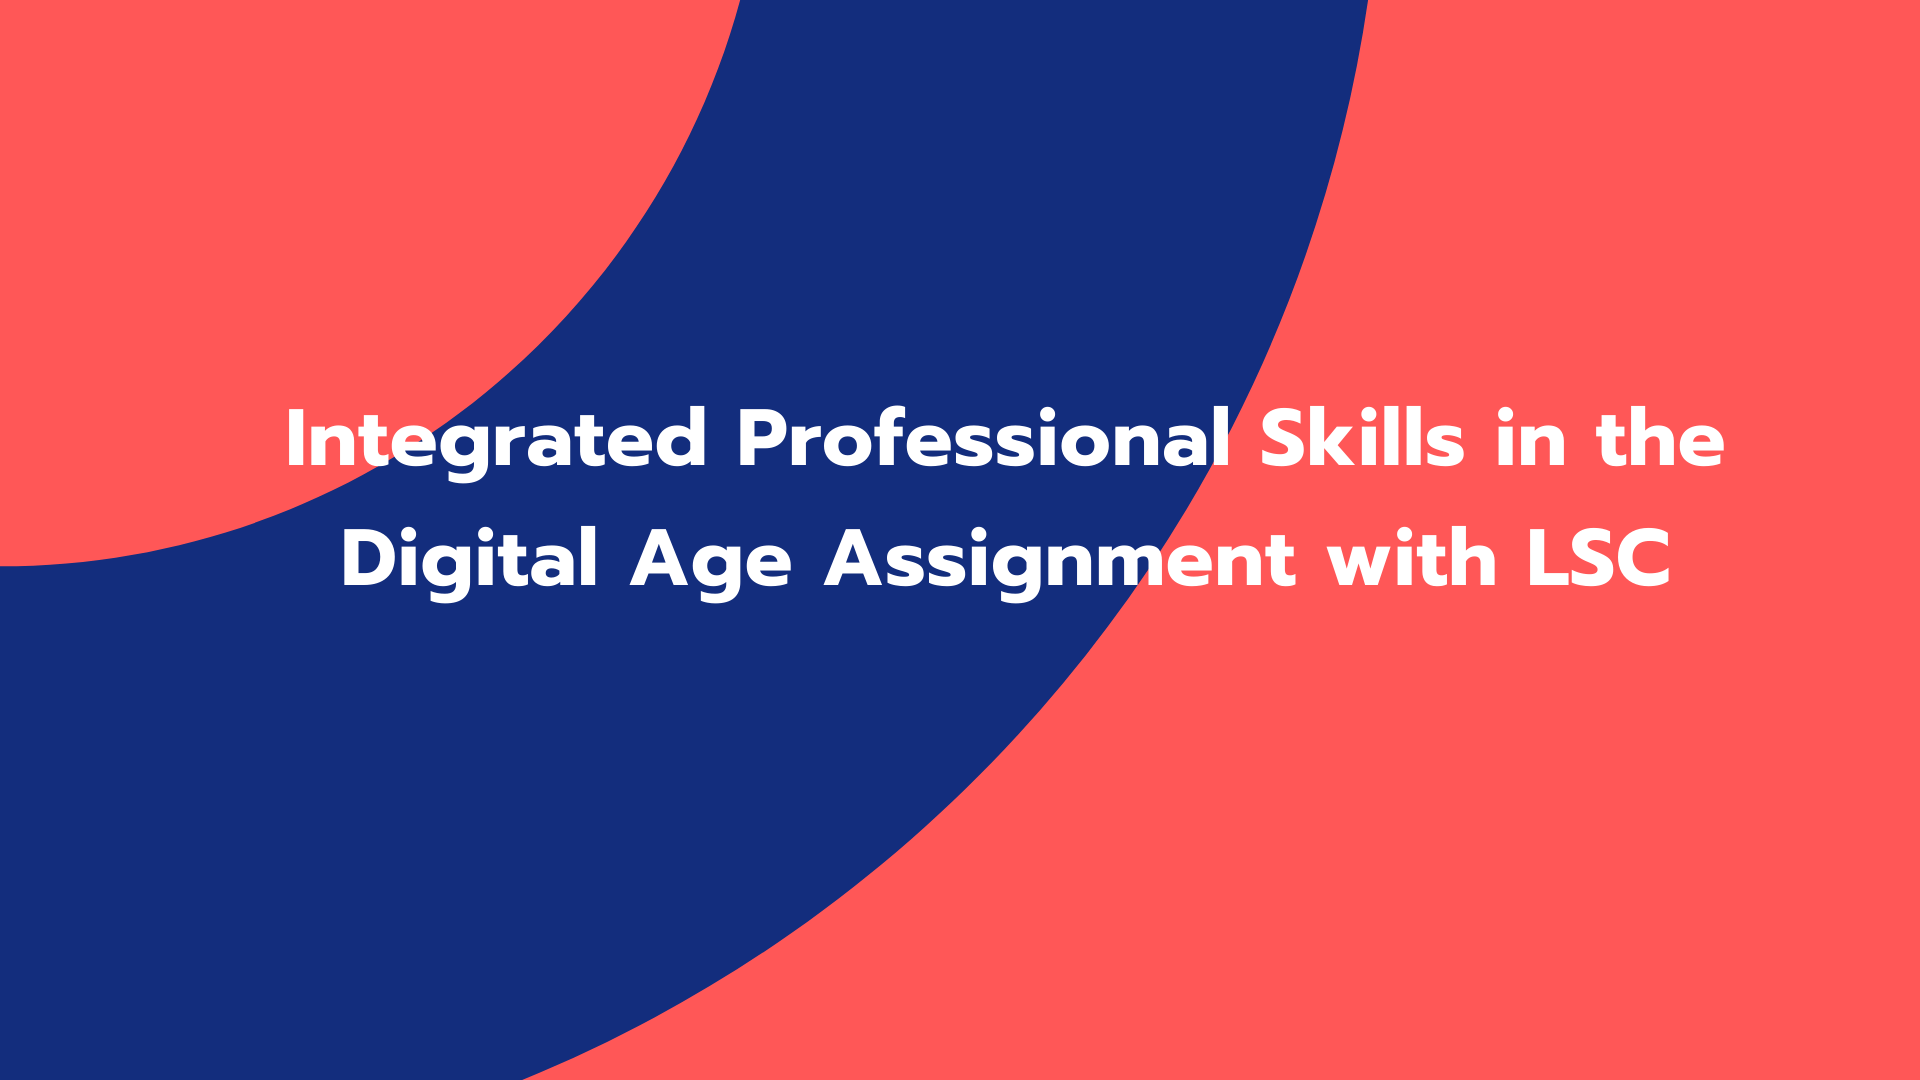 Integrated Professional Skills in the Digital Age Assignment with LSC